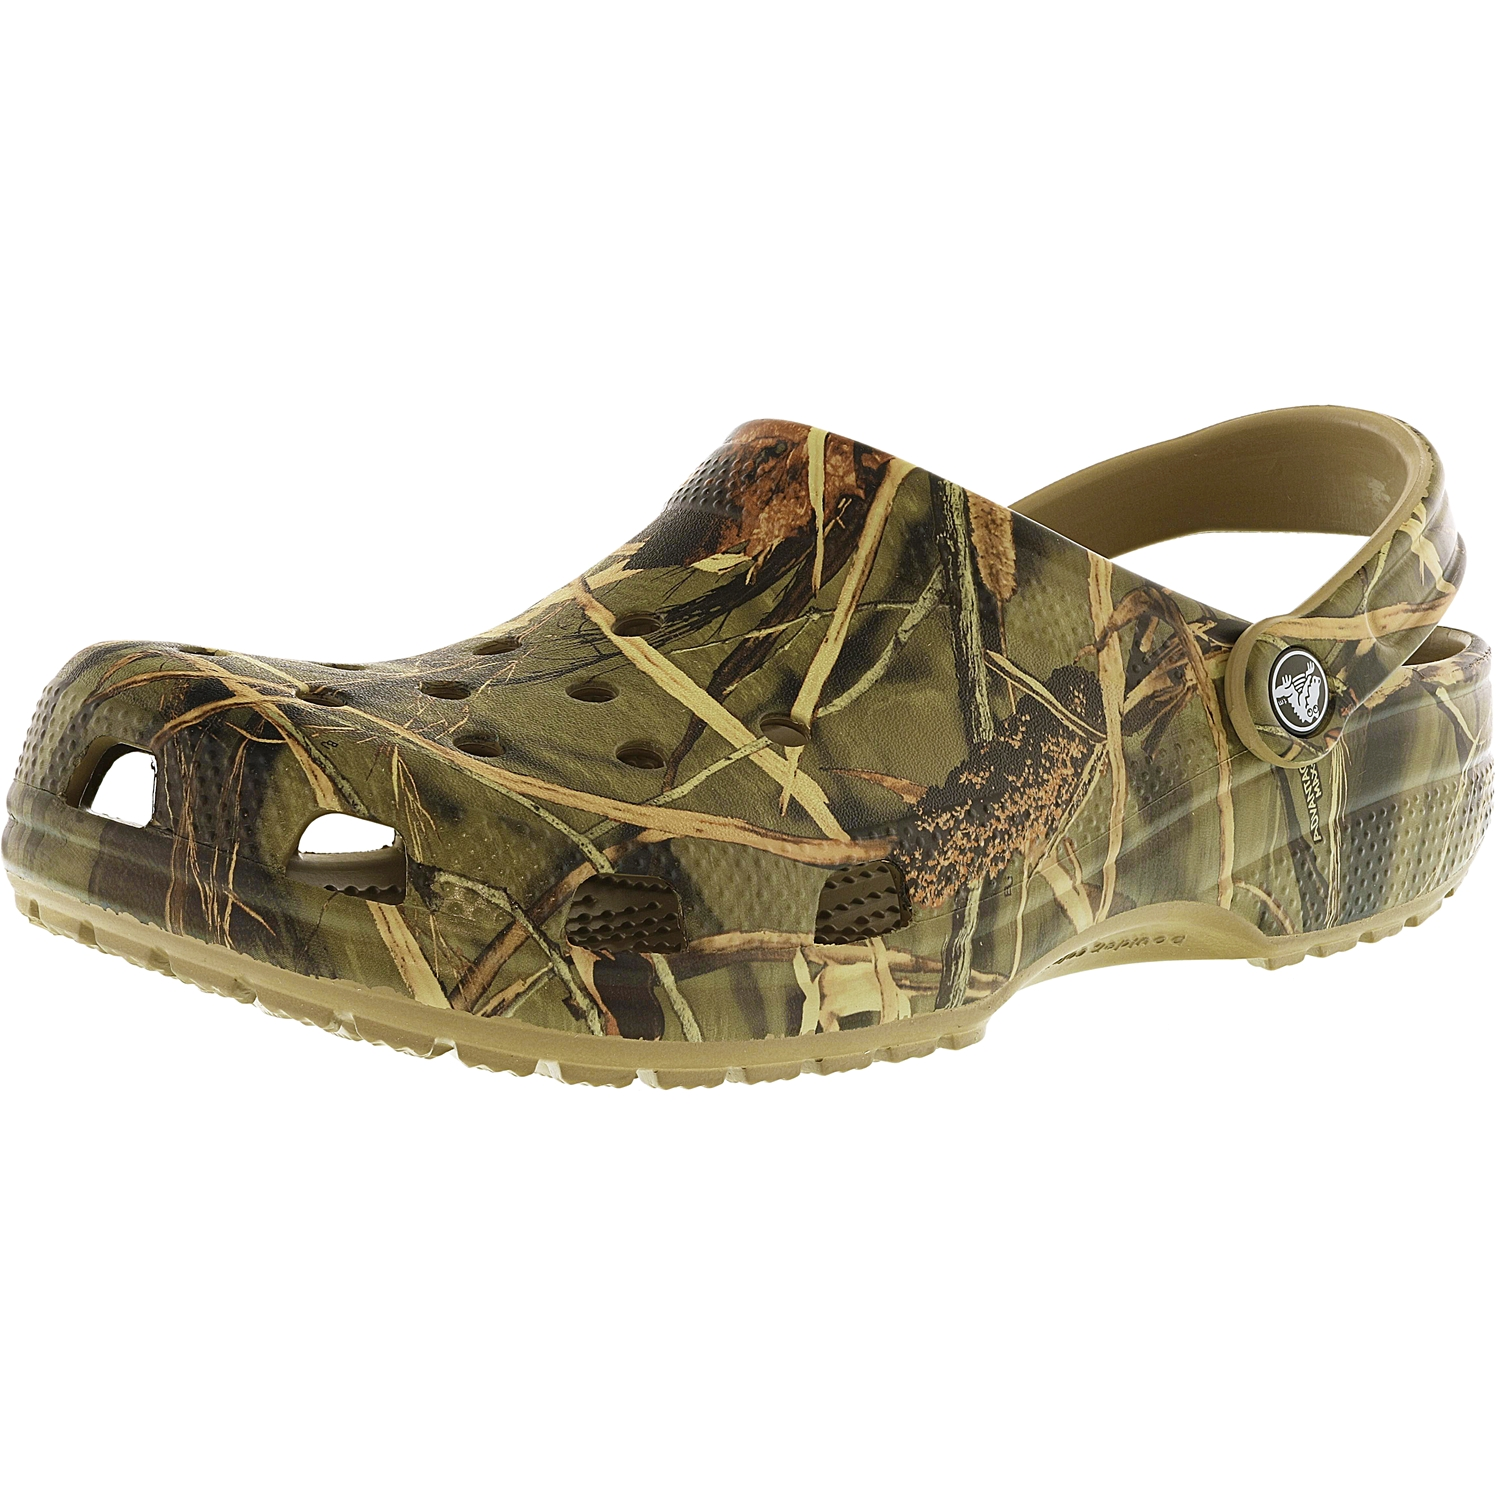 Crocs Classic Realtree Khaki Low Top Rubber Flat Shoe 13M   11M by Crocs